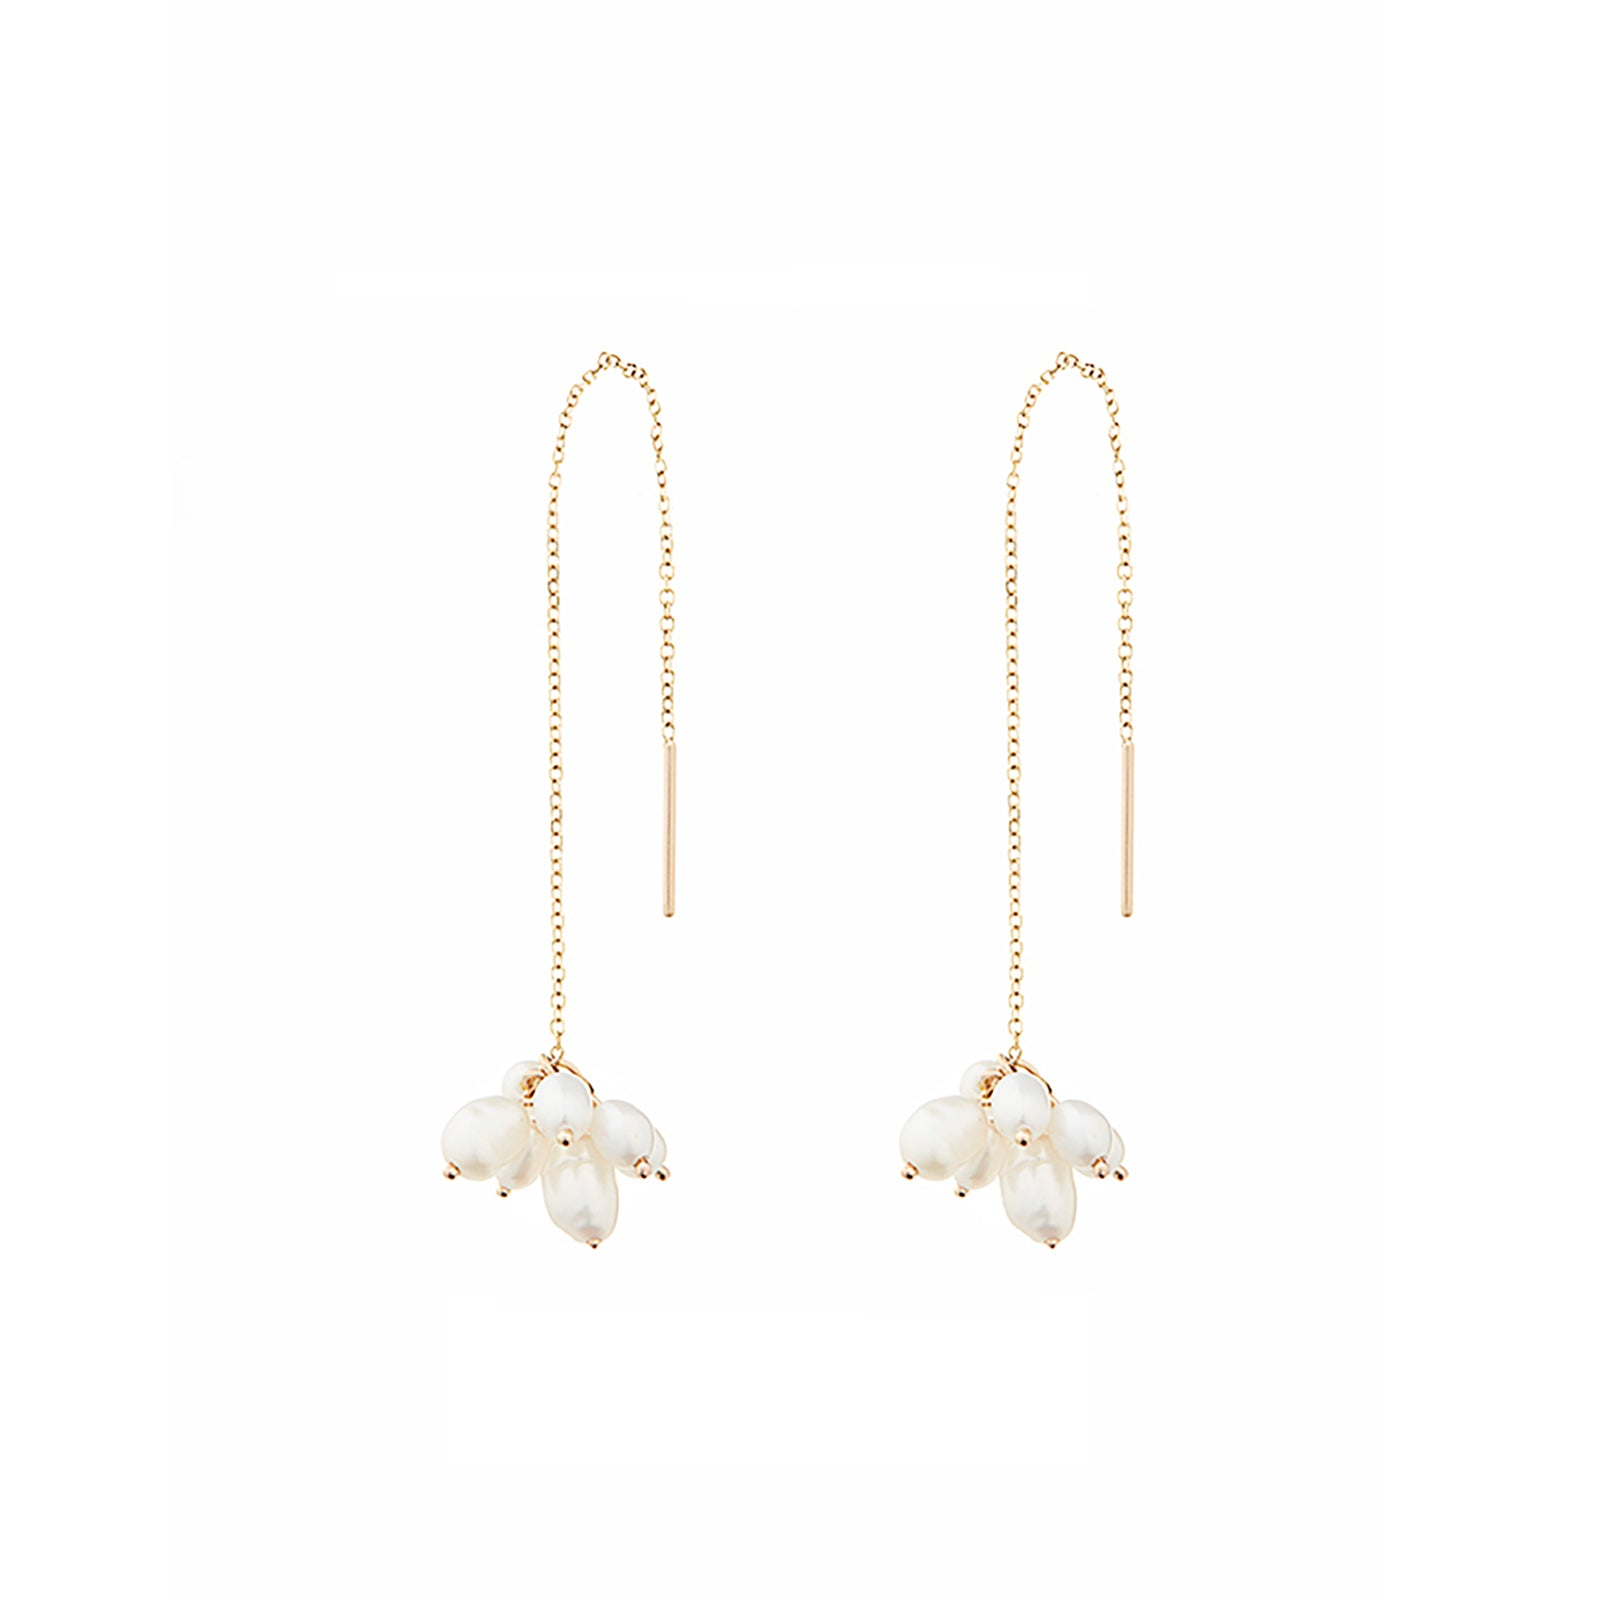 WWAKE Pearl Cloudburst Threader Earring - Earrings - Broken English Jewelry